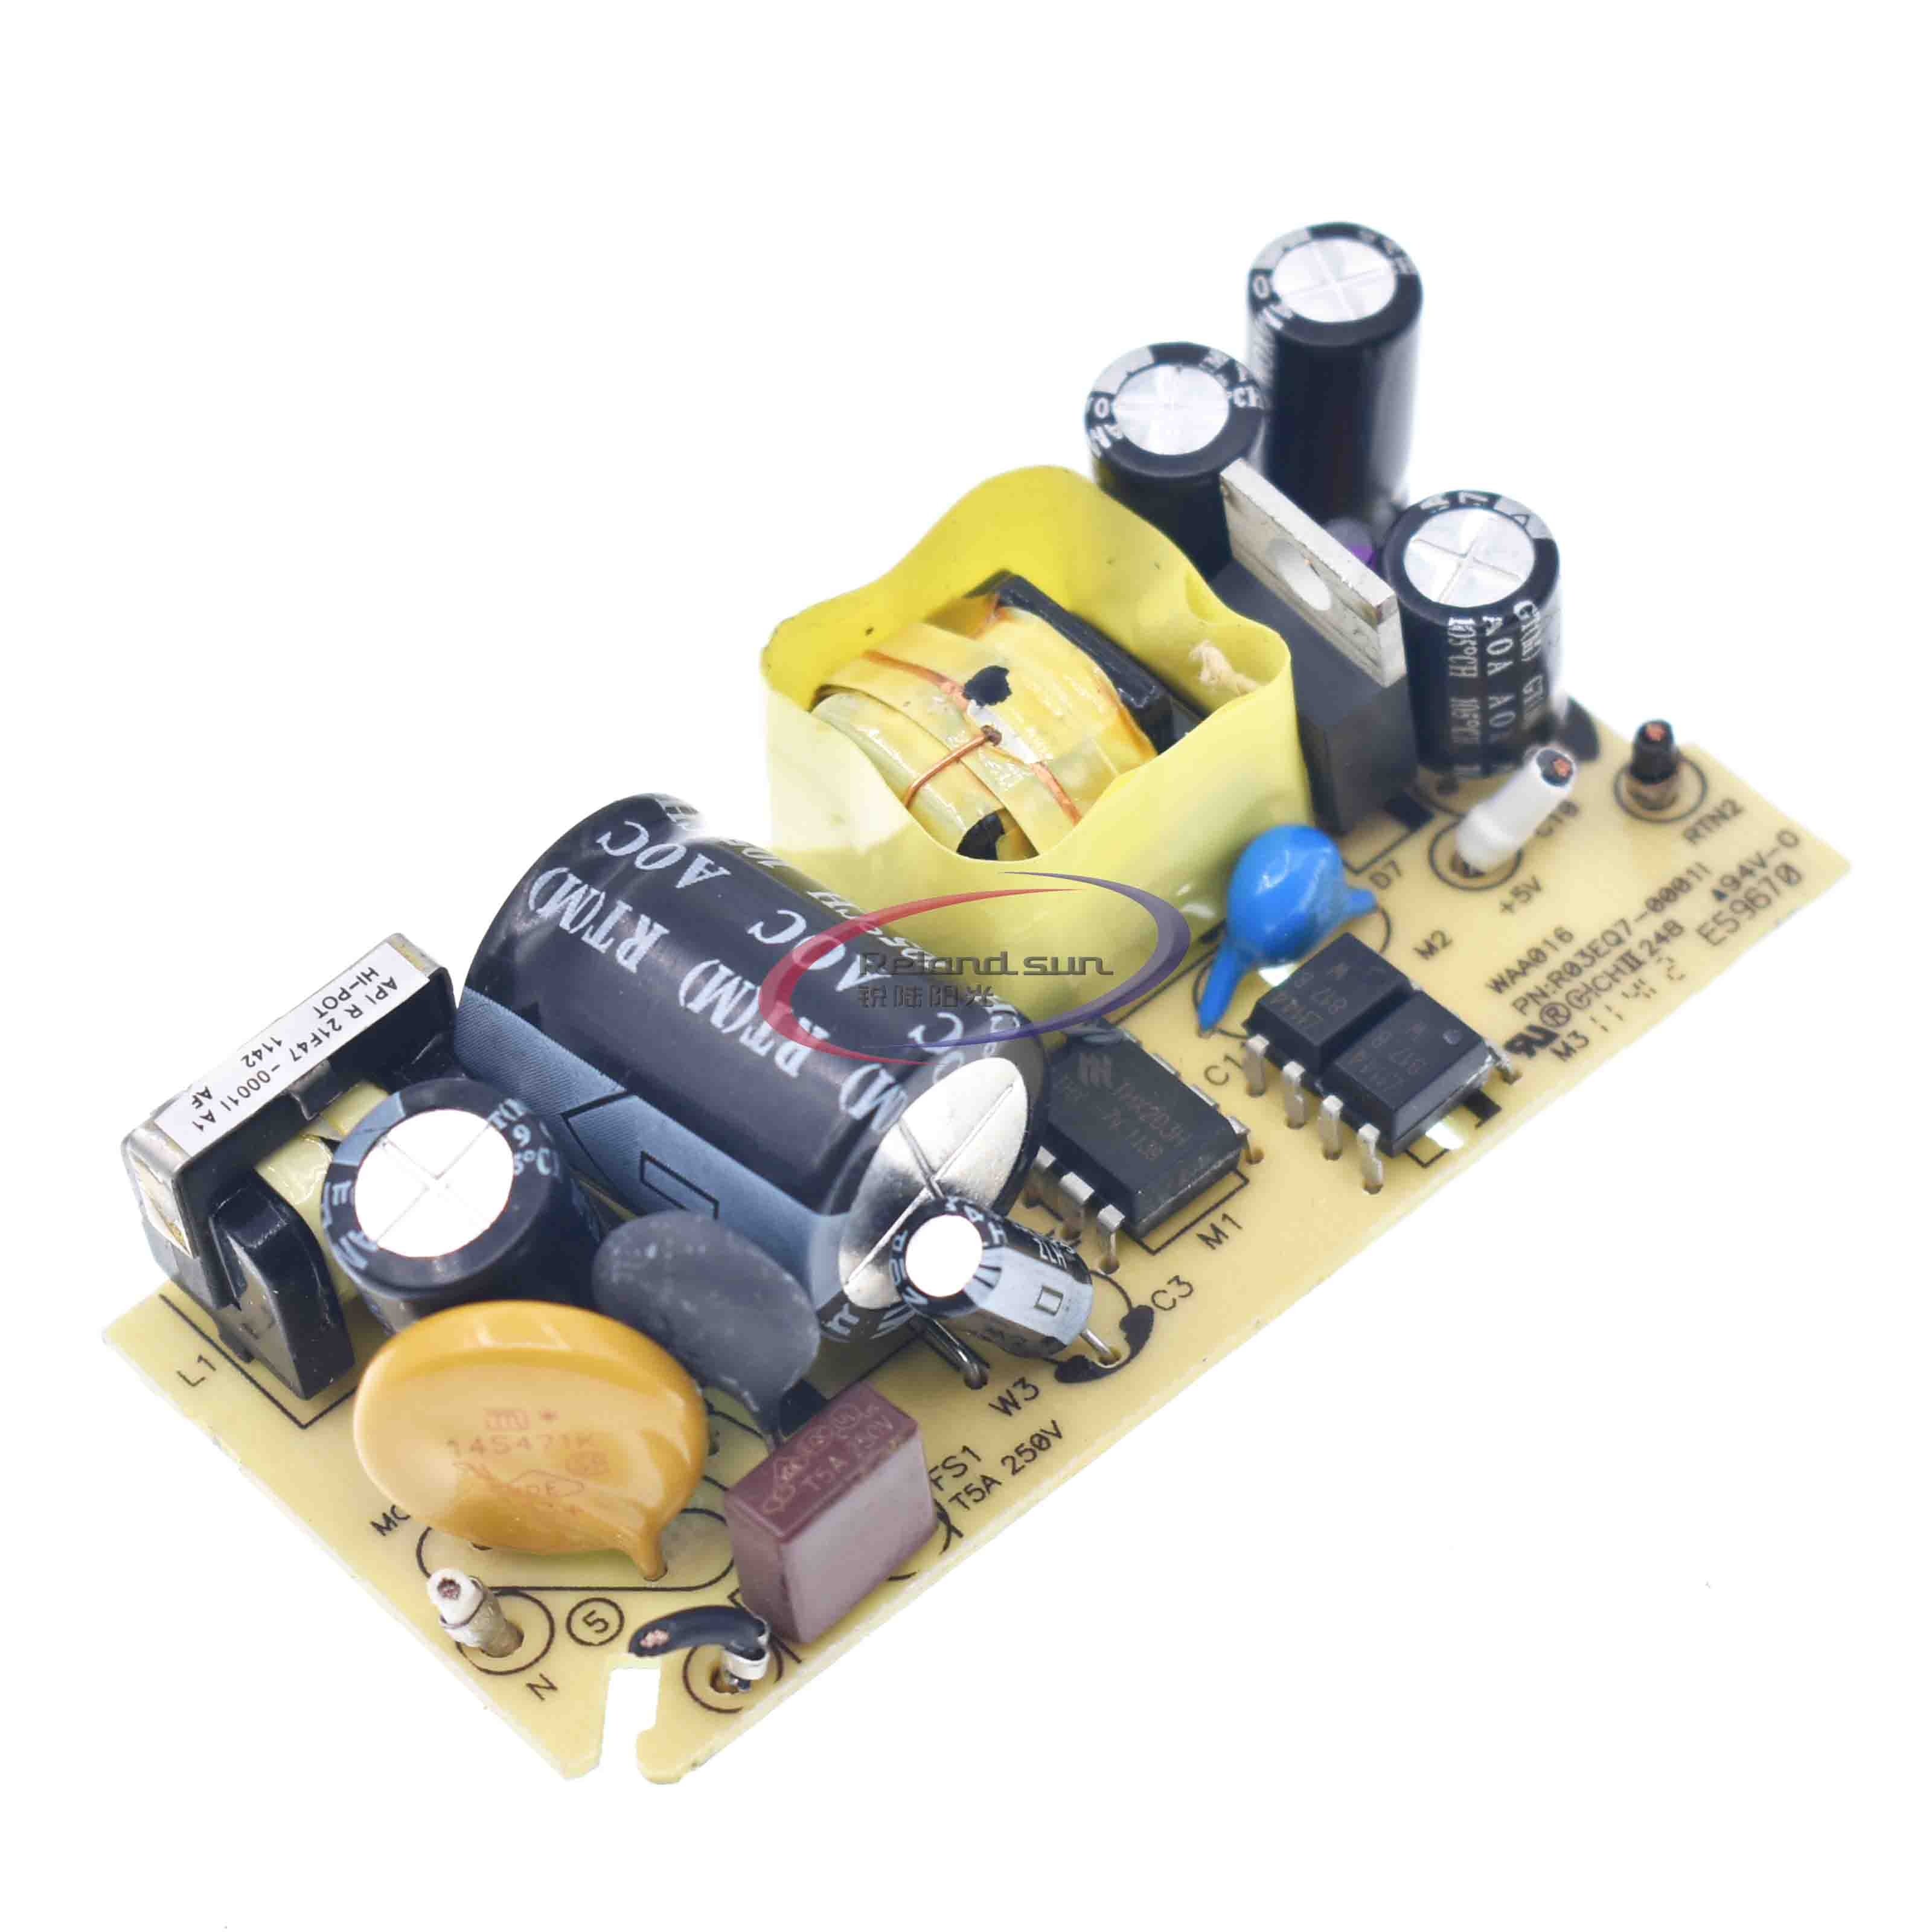 AC-DC 5V 2A 2000mA Switch Switching Power Supply Module For Replace/Repair LED Power Supply Board